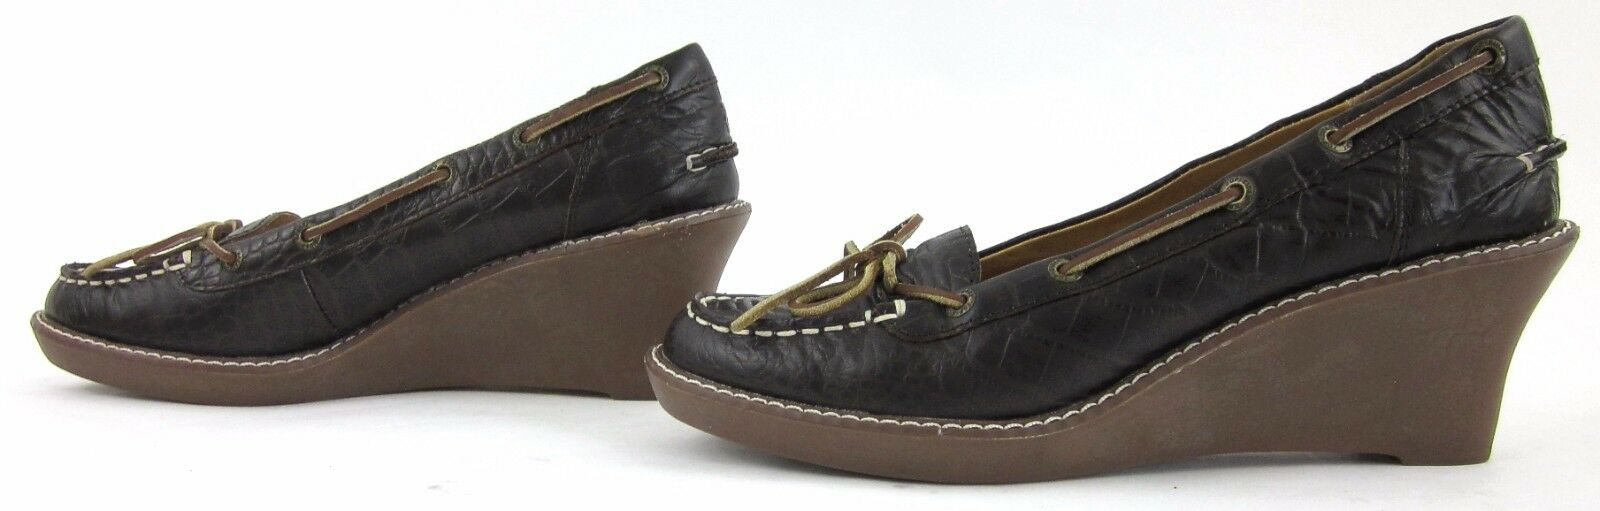 Sperry Top-Sider Wedges Boat Shoe Shoe Boat Style Brown Pelle Sz 7M Worn 1X! bba239